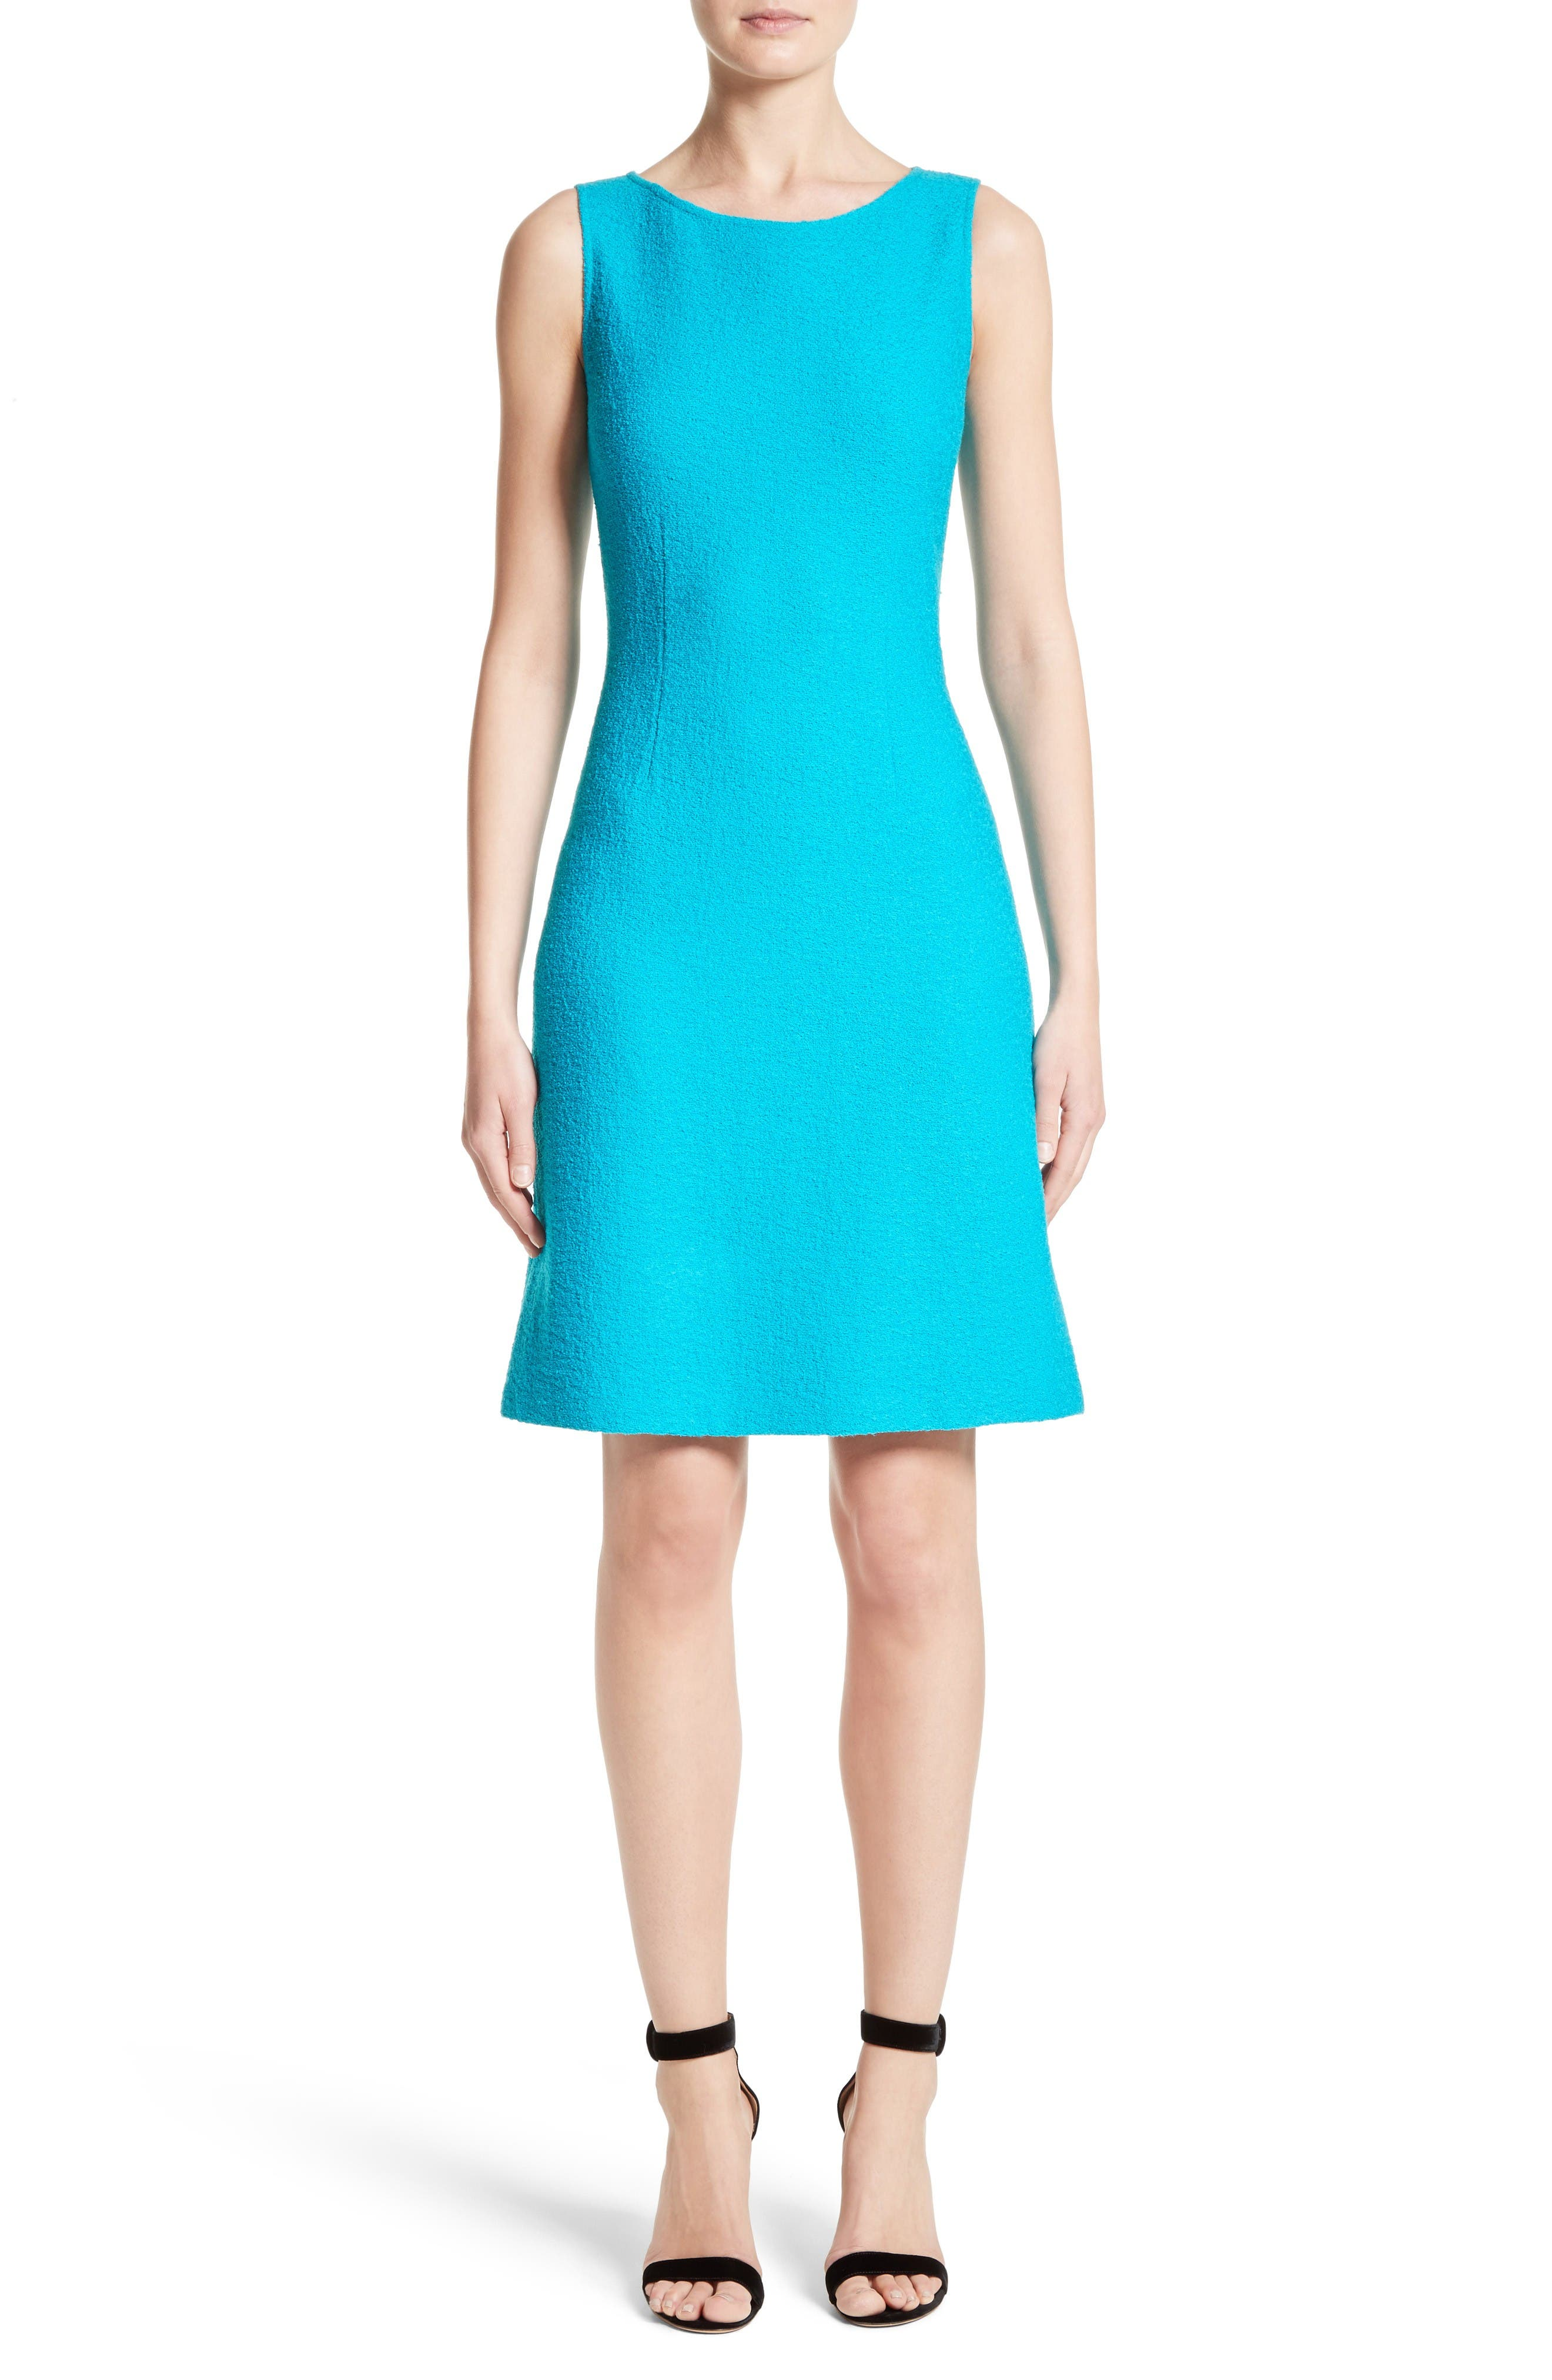 Alternate Image 1 Selected - St. John Collection Clair Knit A-Line Dress